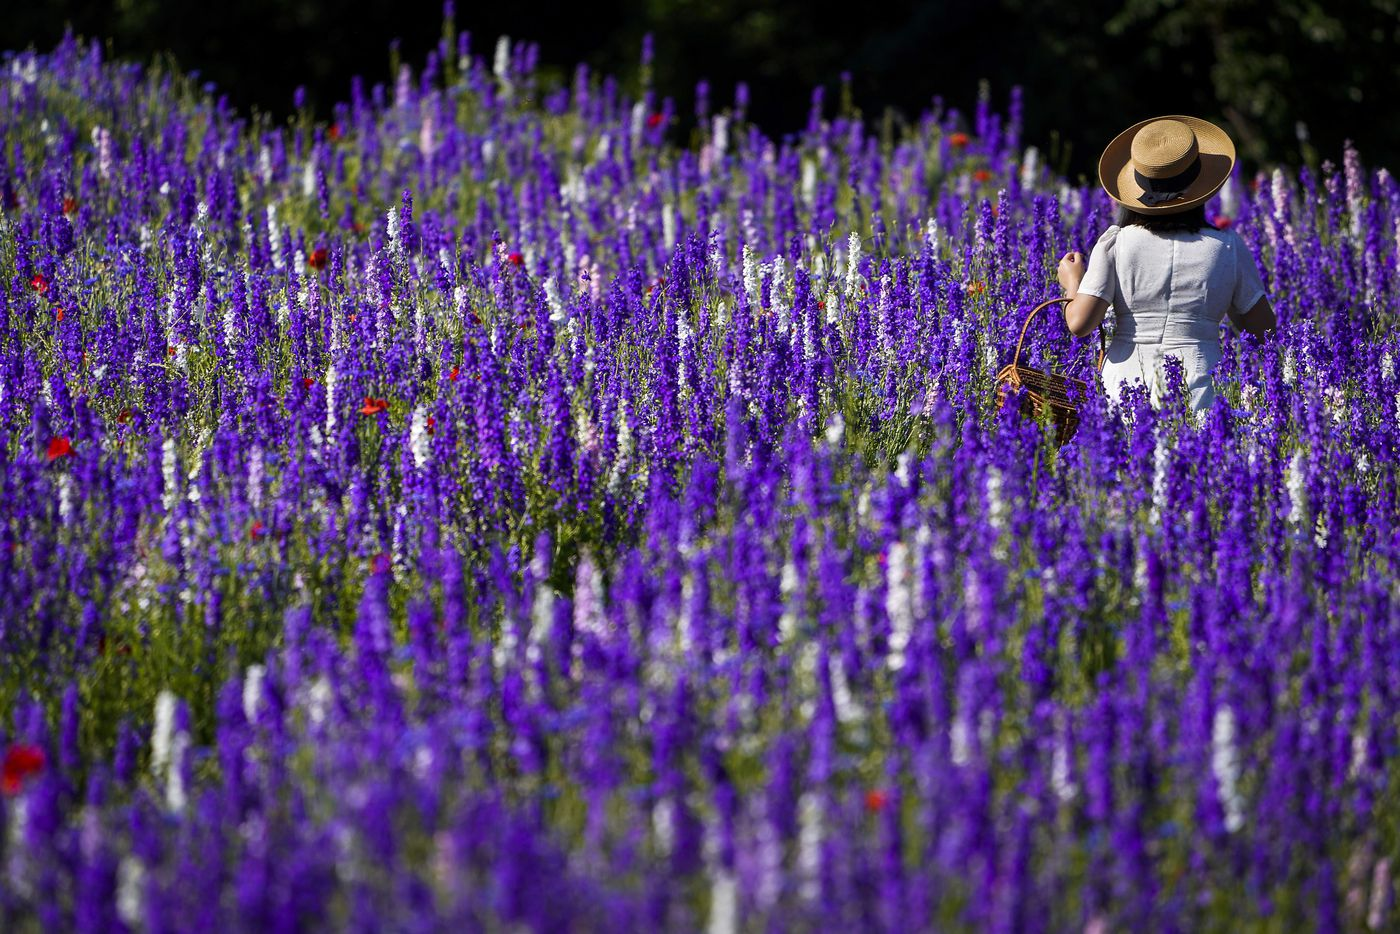 Phuong Vu walks through a field of wildflowers at Prairie Creek Park on Wednesday, May 6, 2020, in Richardson.